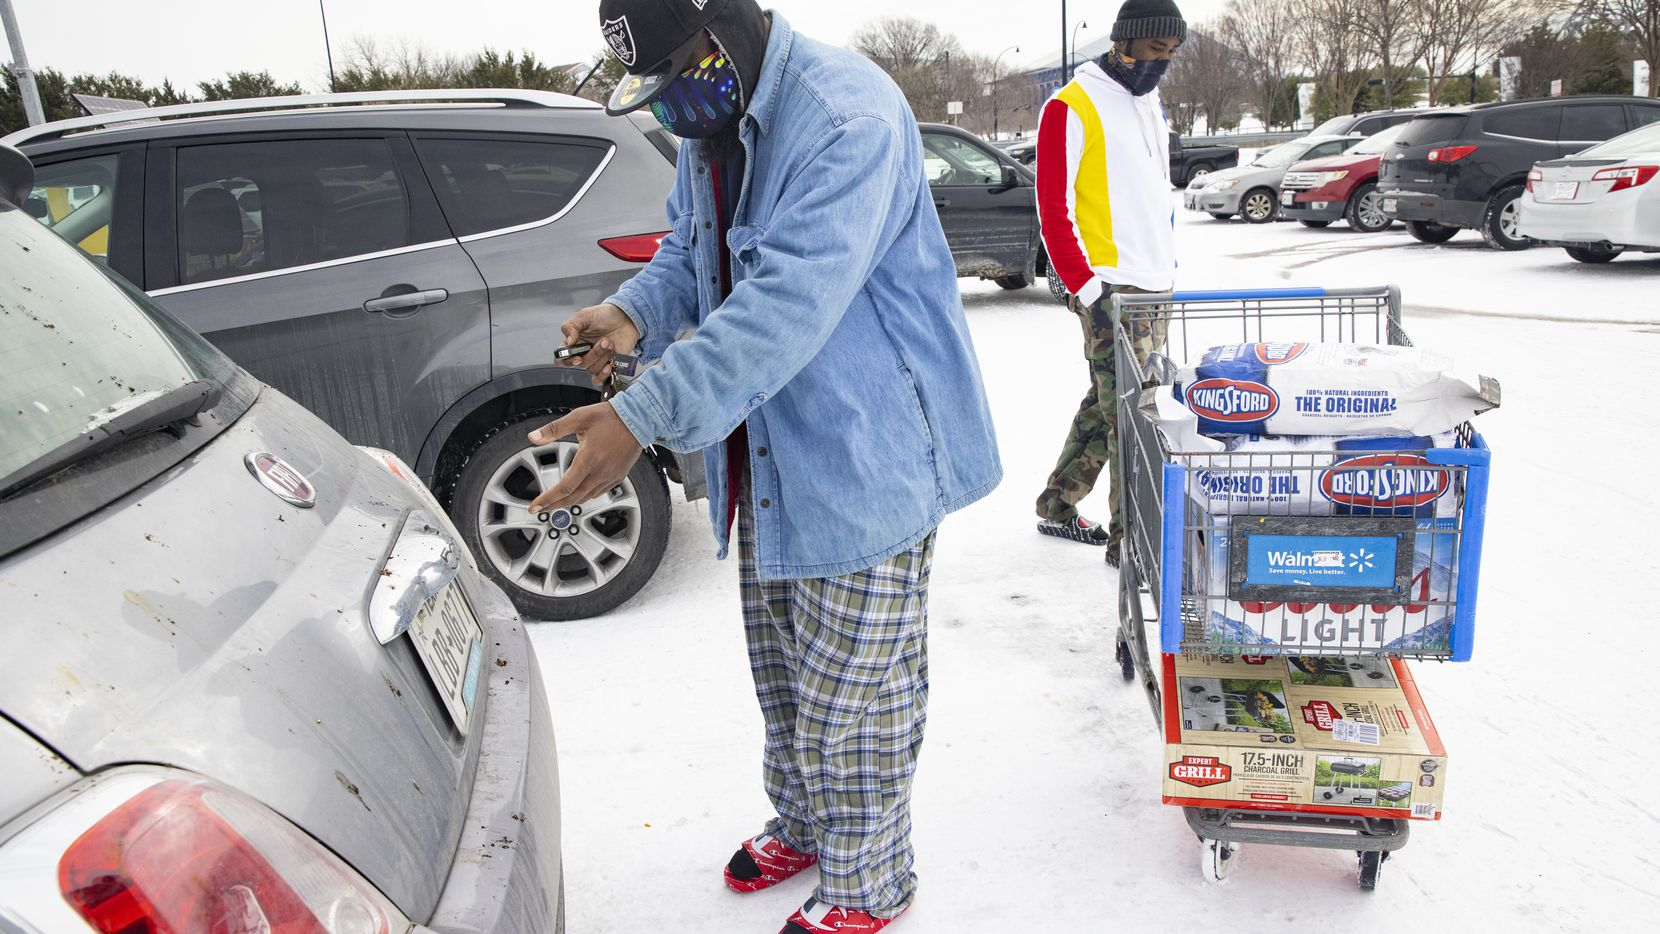 Reuben Brown (left) and Dekaetron McCalley wheel charcoal and a grill they bought at Walmart to their car at Walmart in Arlington on Feb. 16, 2021. They lost power yesterday and plan to use the charcoal and grill to cook food.